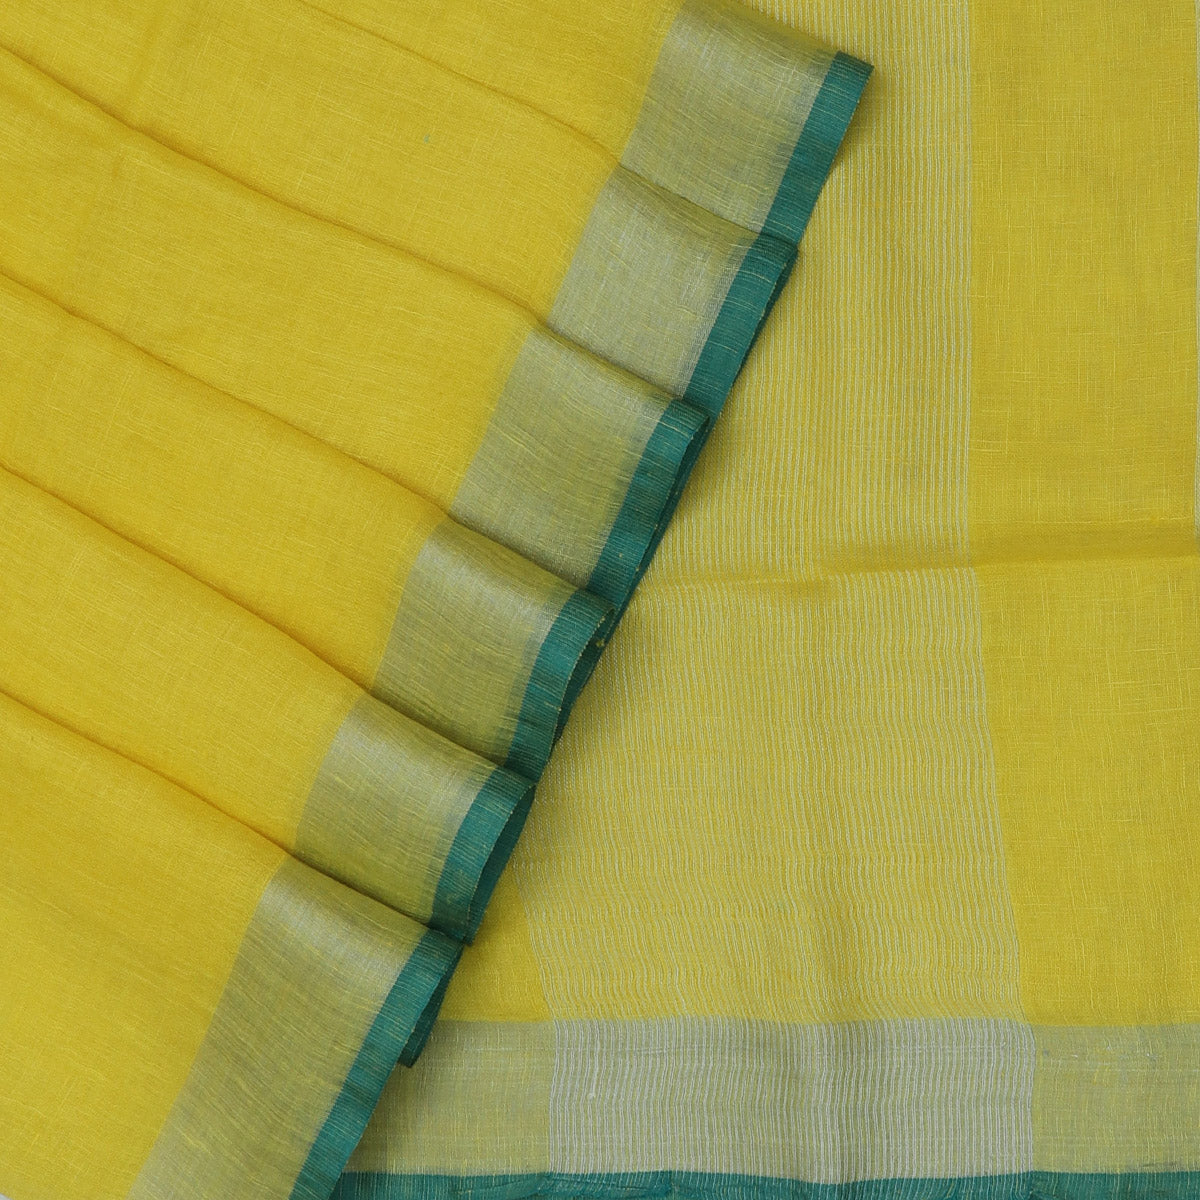 Pure Linen Saree Yellow and Green Shade with Silver border